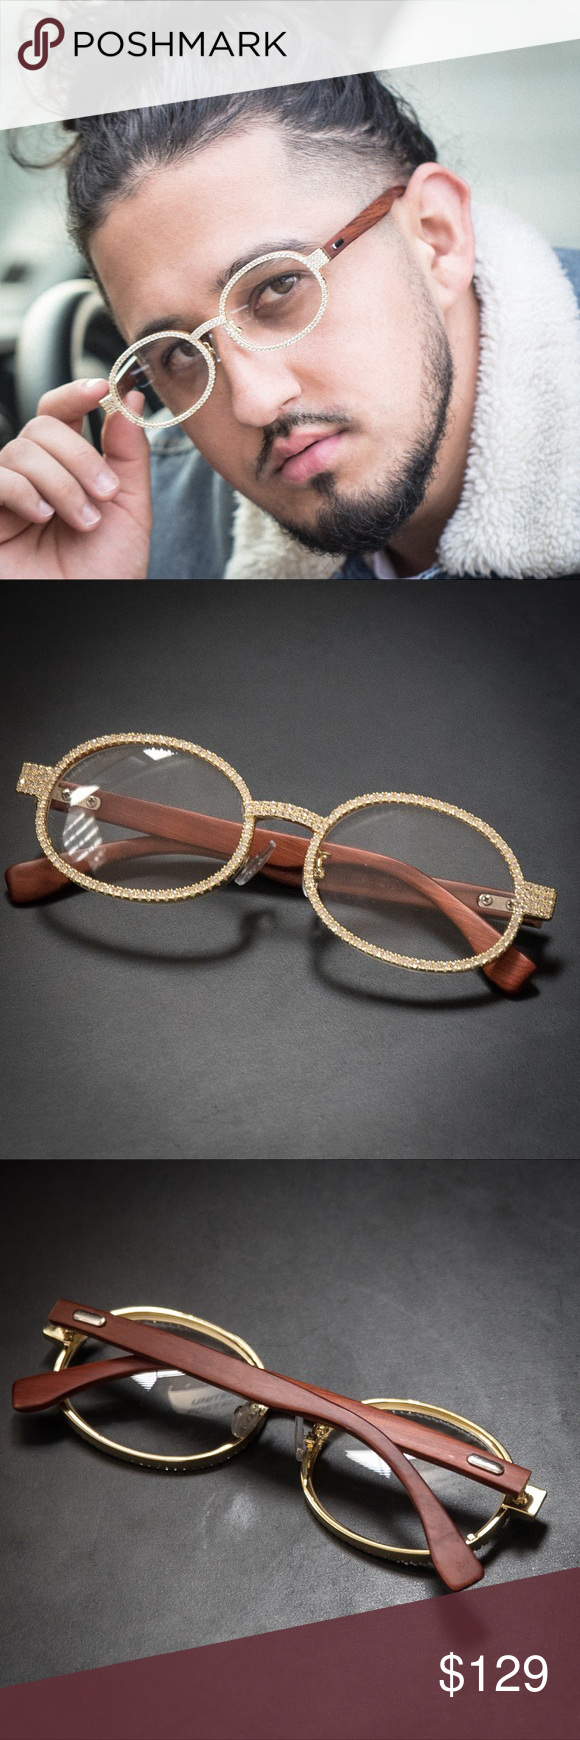 69c4f1a2a7ee Diamond Gold Clear Lens Wood Frame Glasses Diamond Gold Clear Lens Wood Frame  Glasses Plating